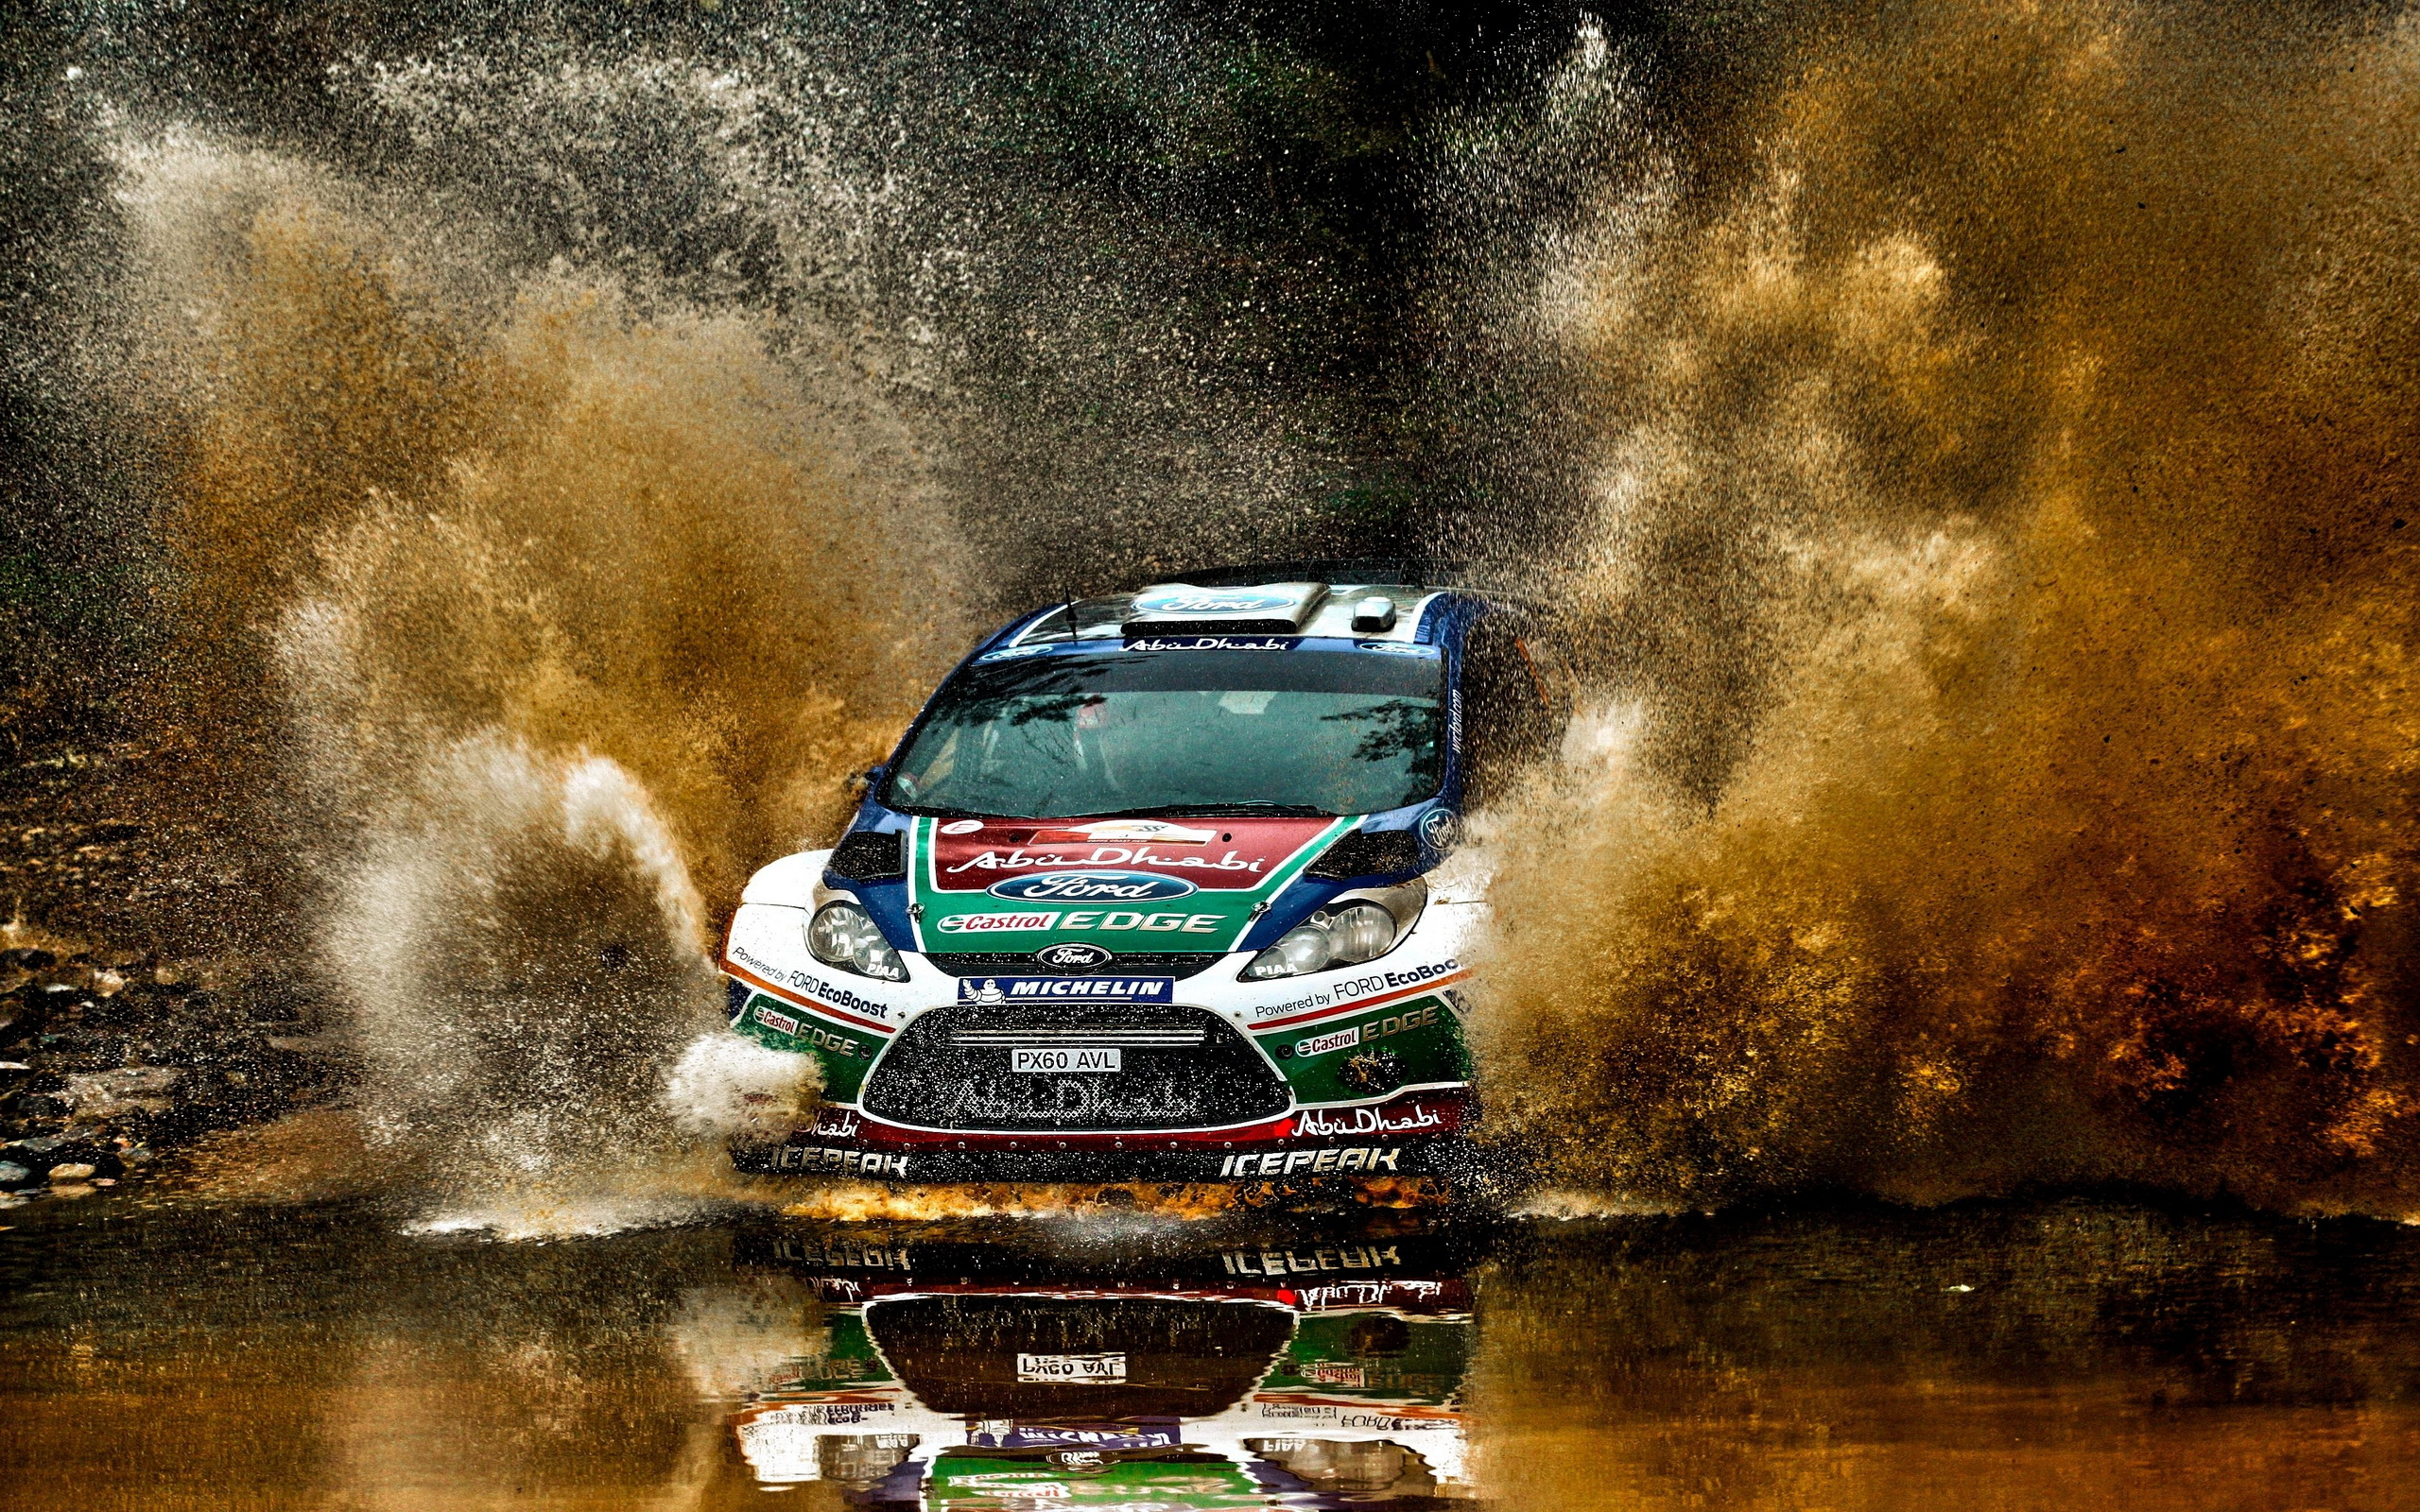 Rally Cars Res: 2560x1600 / Size:2311kb. Views: 32901